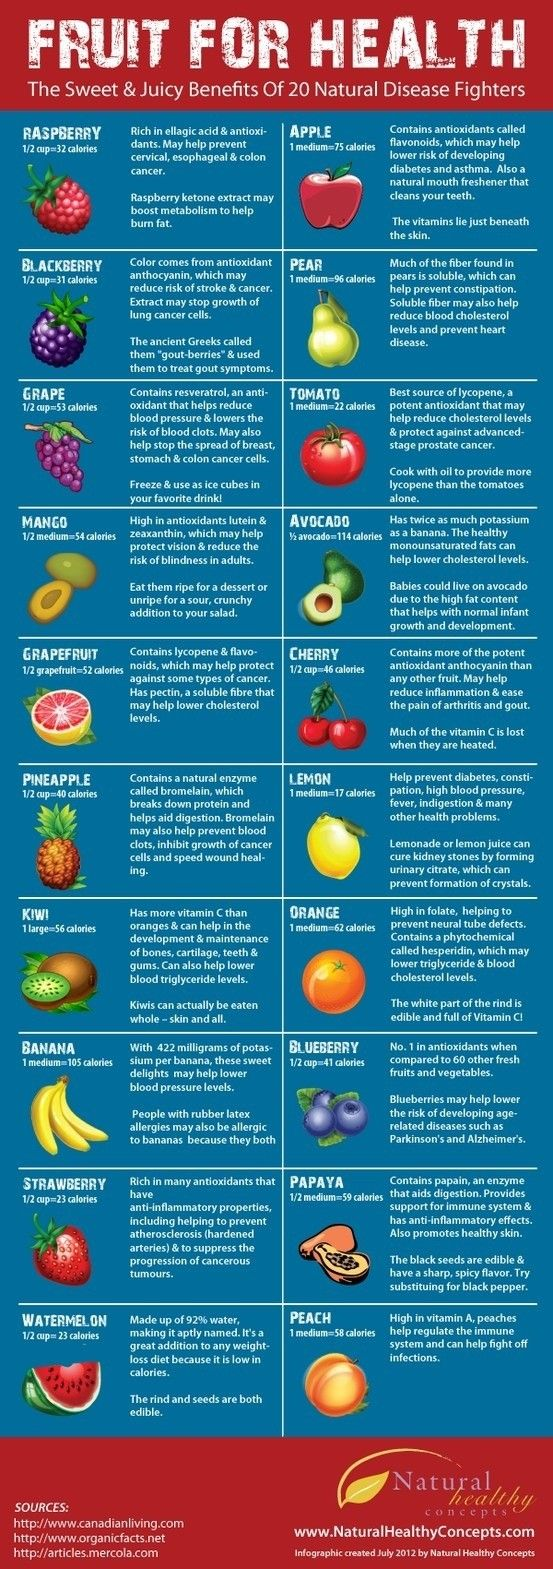 Trying to decrease my fast food intake is hard but when I see the many benefits of fruit, it helps keep me at home instead.